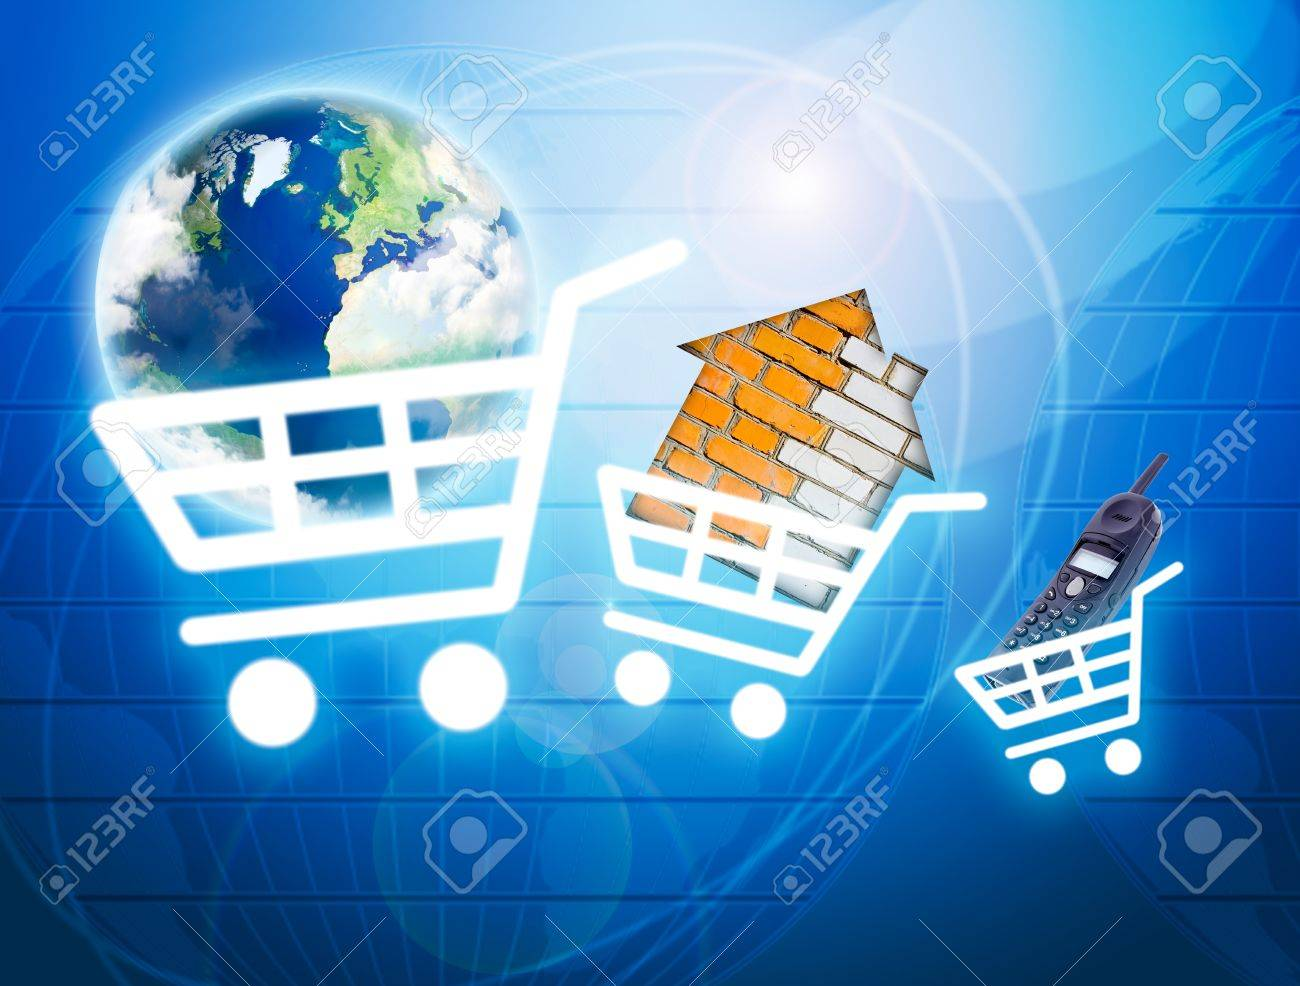 Shopping basket with earth, house, phone as a symbol of internet commerce Stock Photo - 10129236